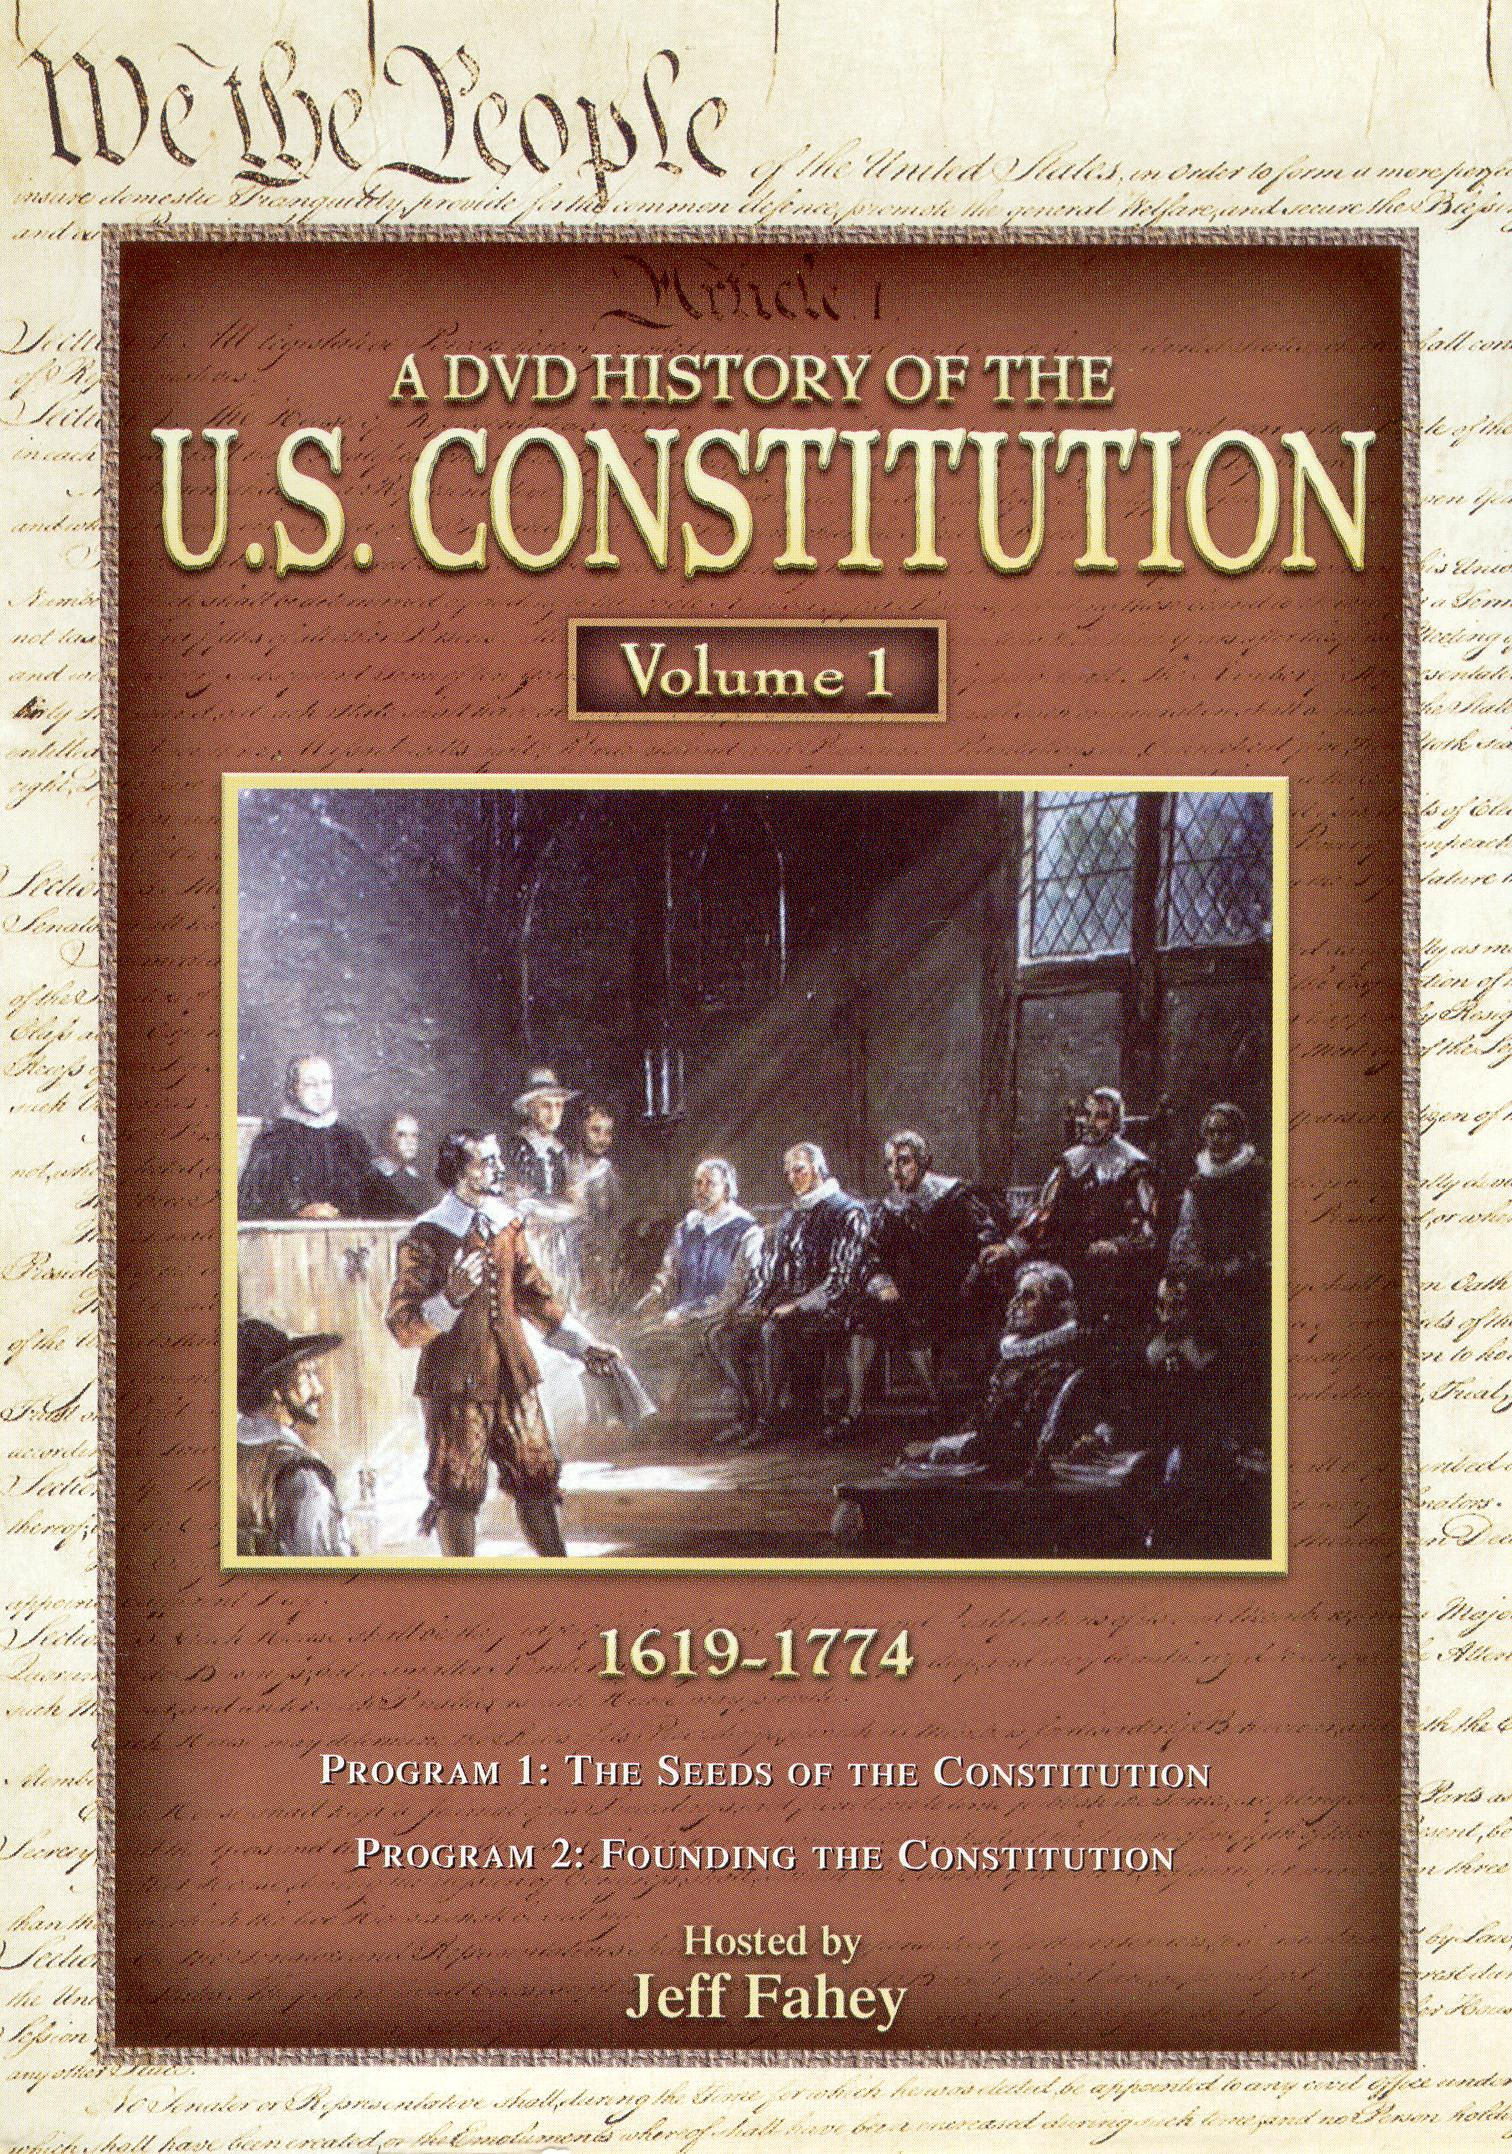 A DVD History of the U.S. Constitution, Vol. 1